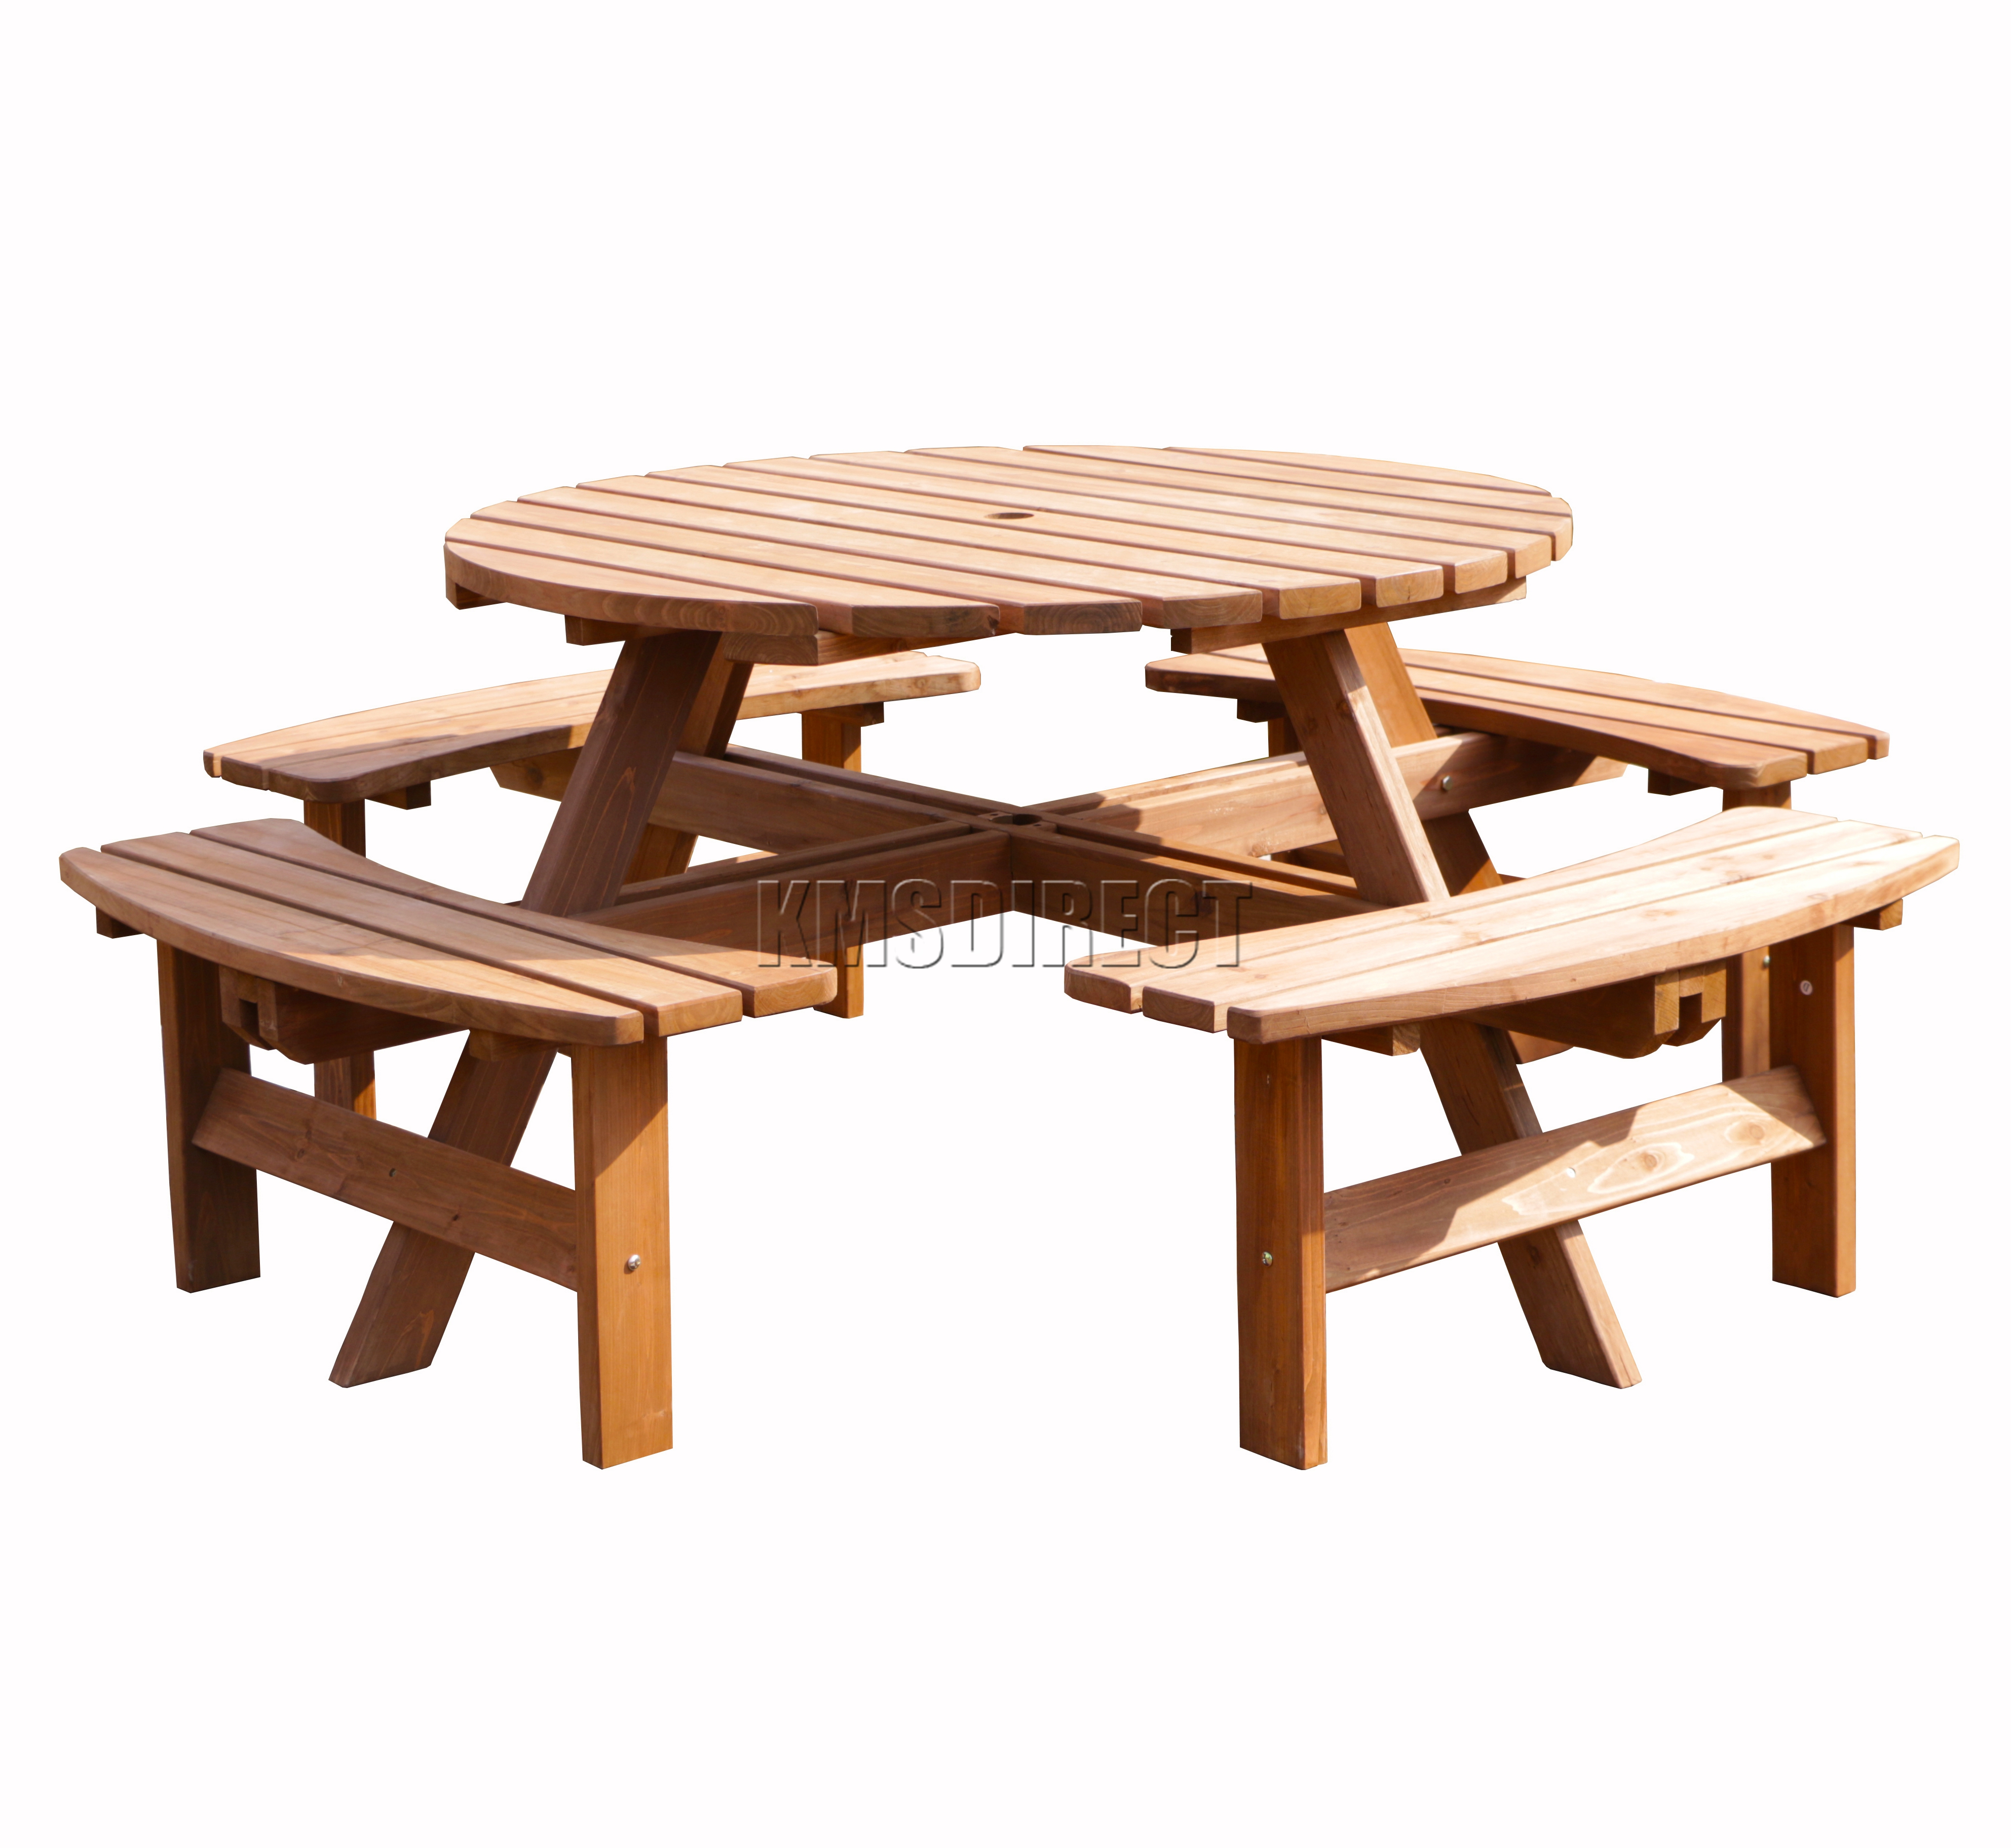 sentinel garden patio 8 seater wooden pub bench round picnic table furniture brown new - Garden Furniture 8 Seater